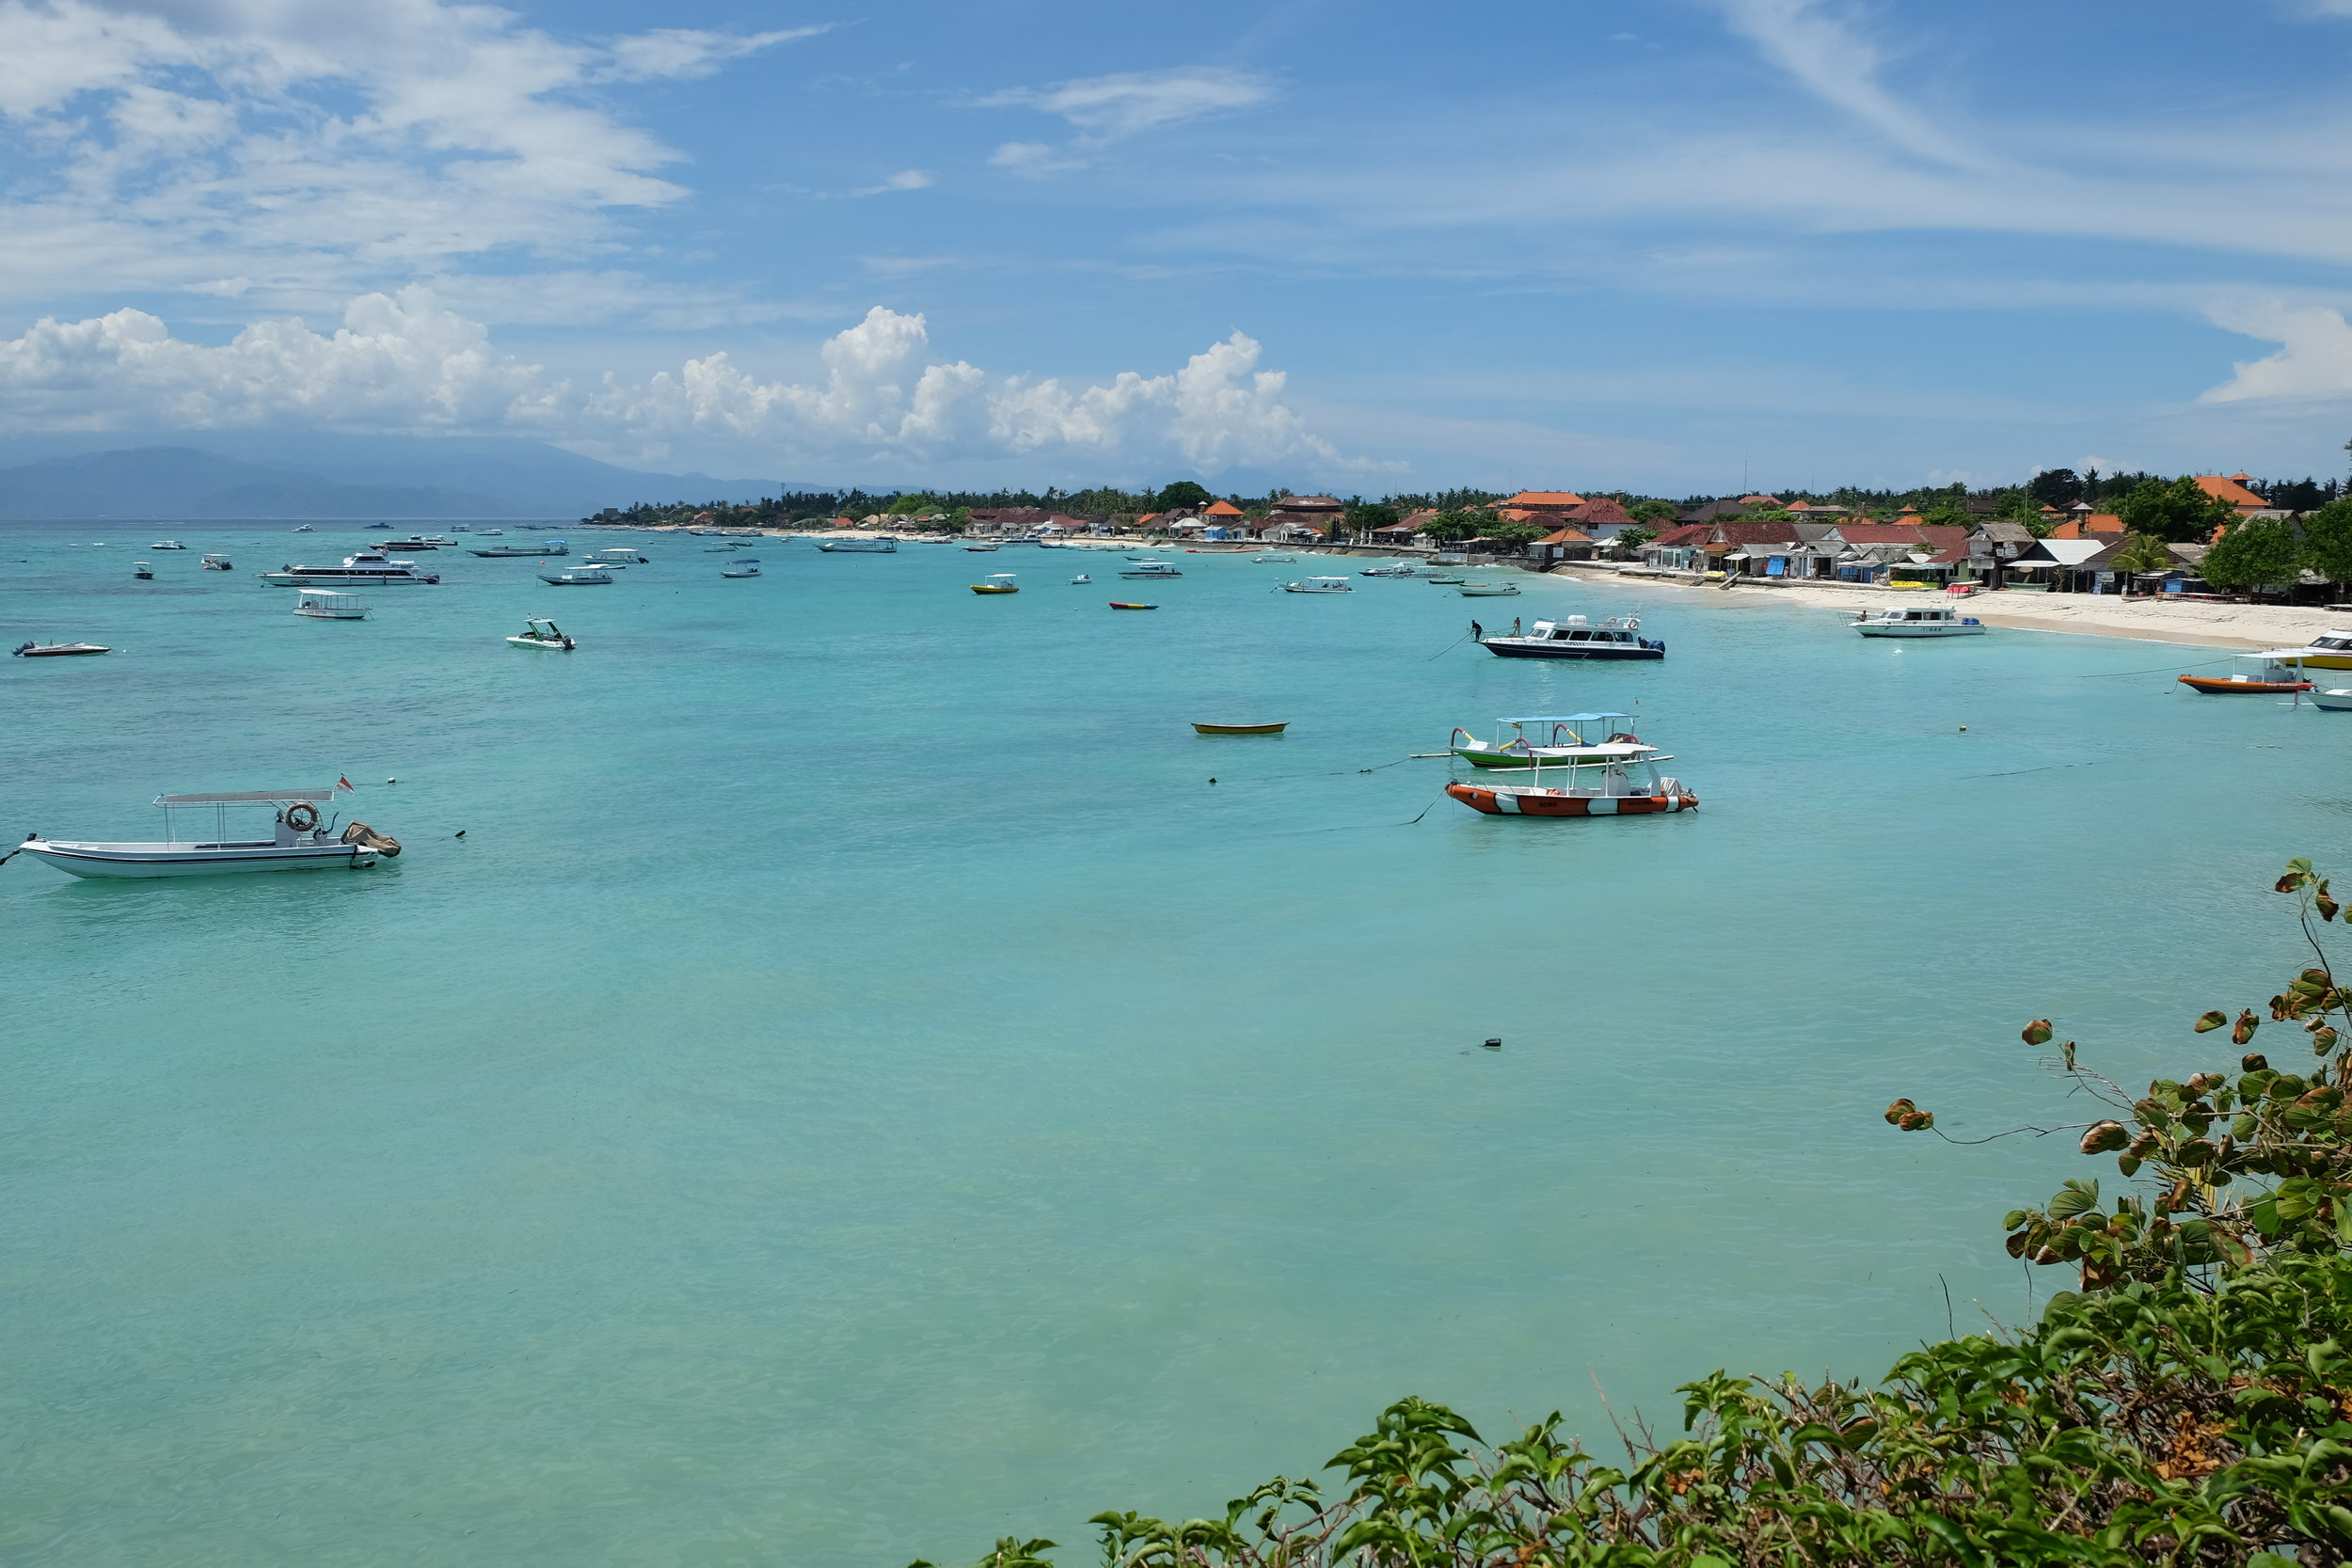 Nusa Lembongan island just 30 minute ferry ride from Bali